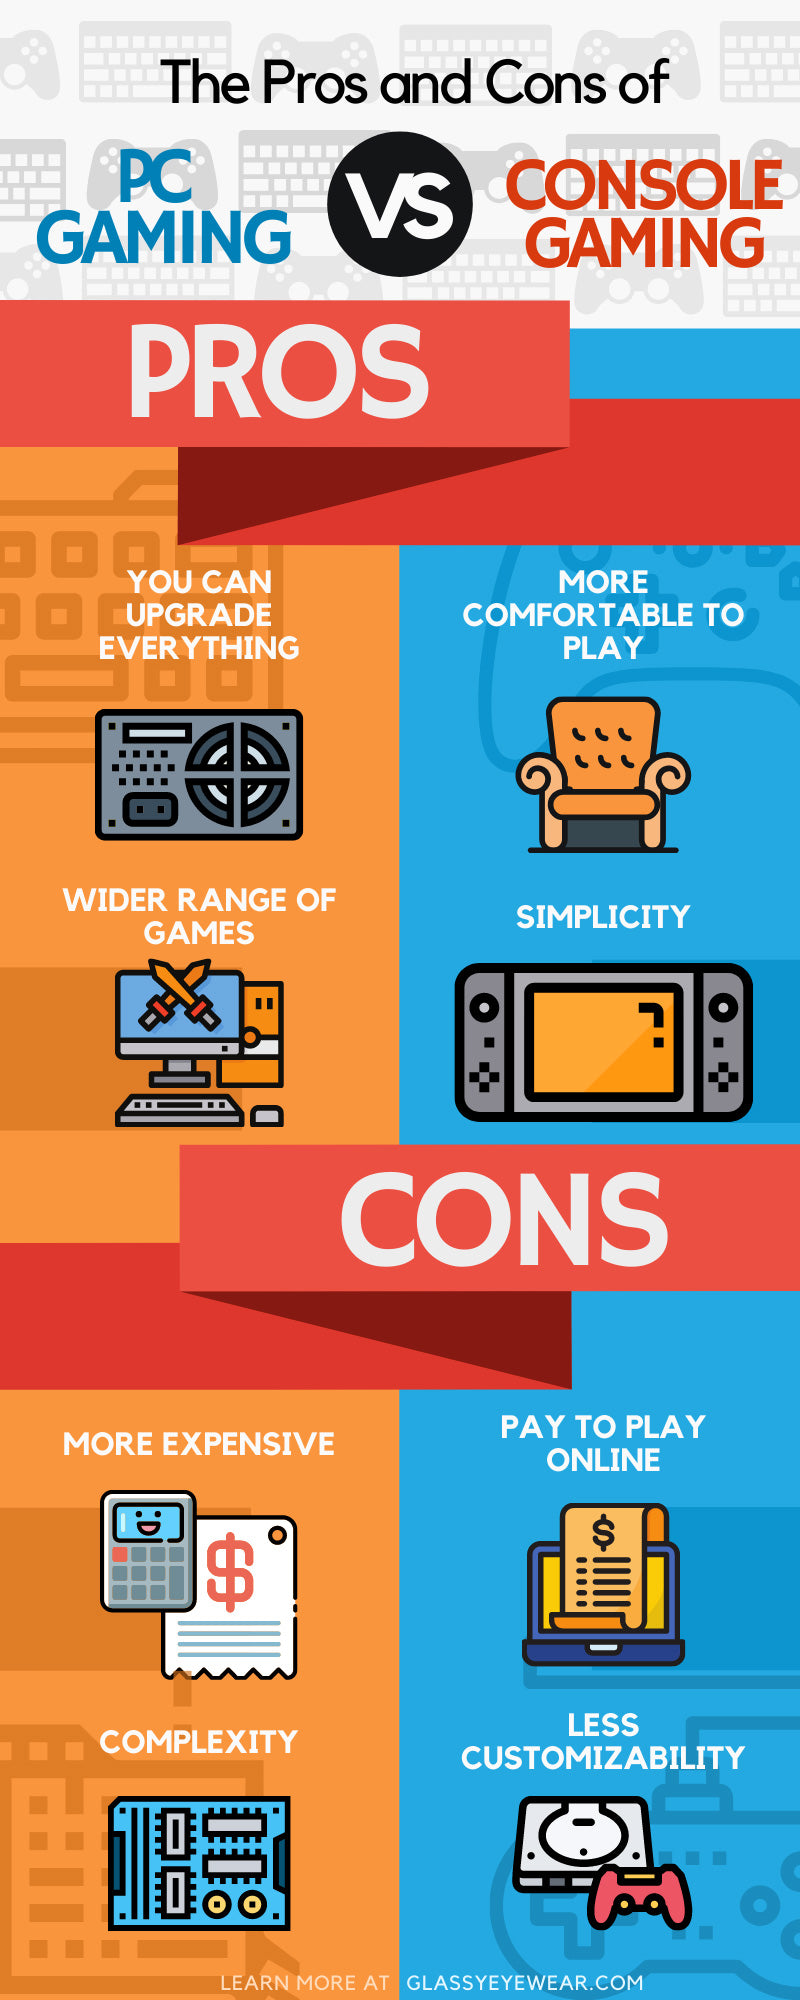 The Pros and Cons of PC Gaming vs Console Gaming